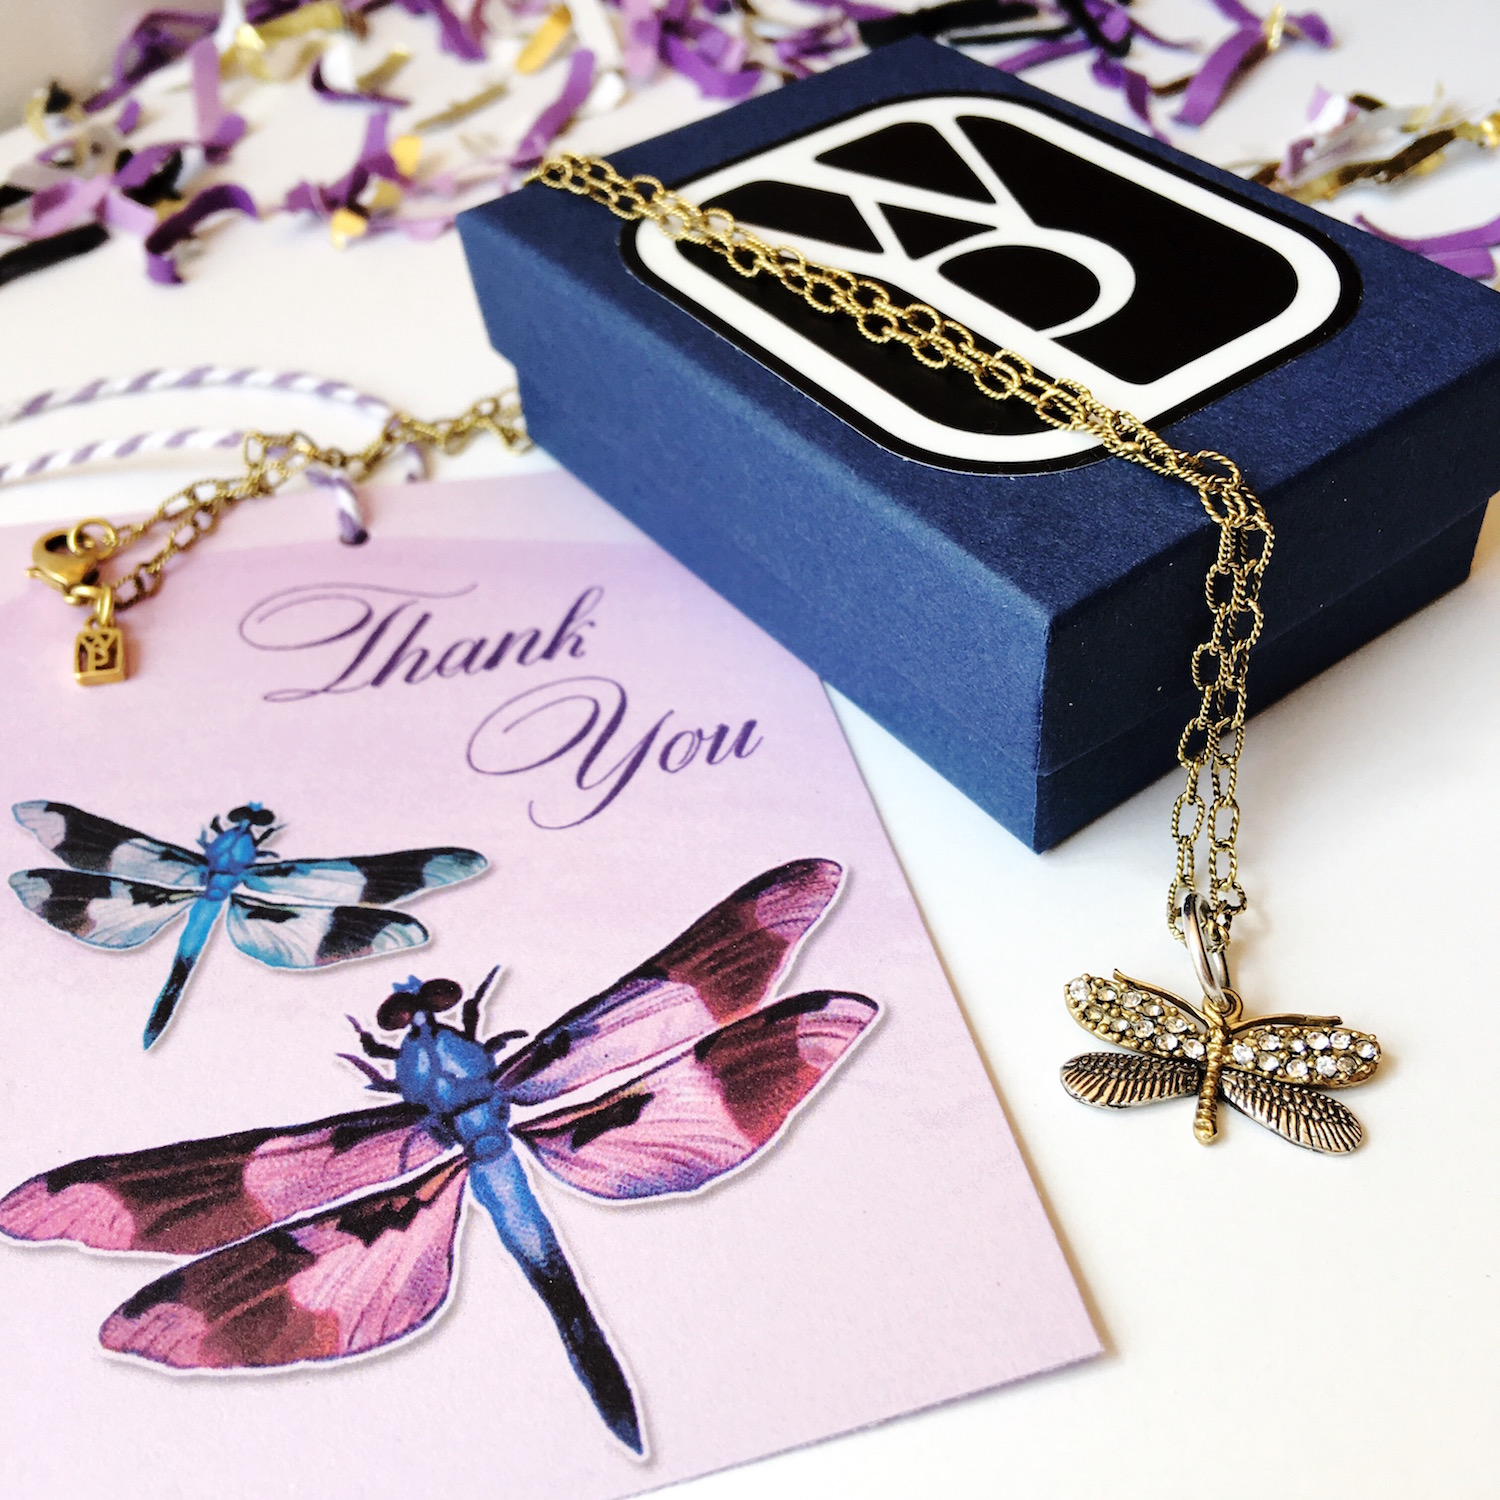 Natural Beauties Dragonfly Necklace from Waxing Poetic for Bridesmaids Gifts and Mother of the Bride and/or Groom. Click to Download your Free Dragonfly Thank You Gift Tags. As seen on Brenda's Wedding Blog www.brendasweddingblog.com #jewelrydesign #jewelrymaking #dragonfly #bridesmaids #motherofthebride